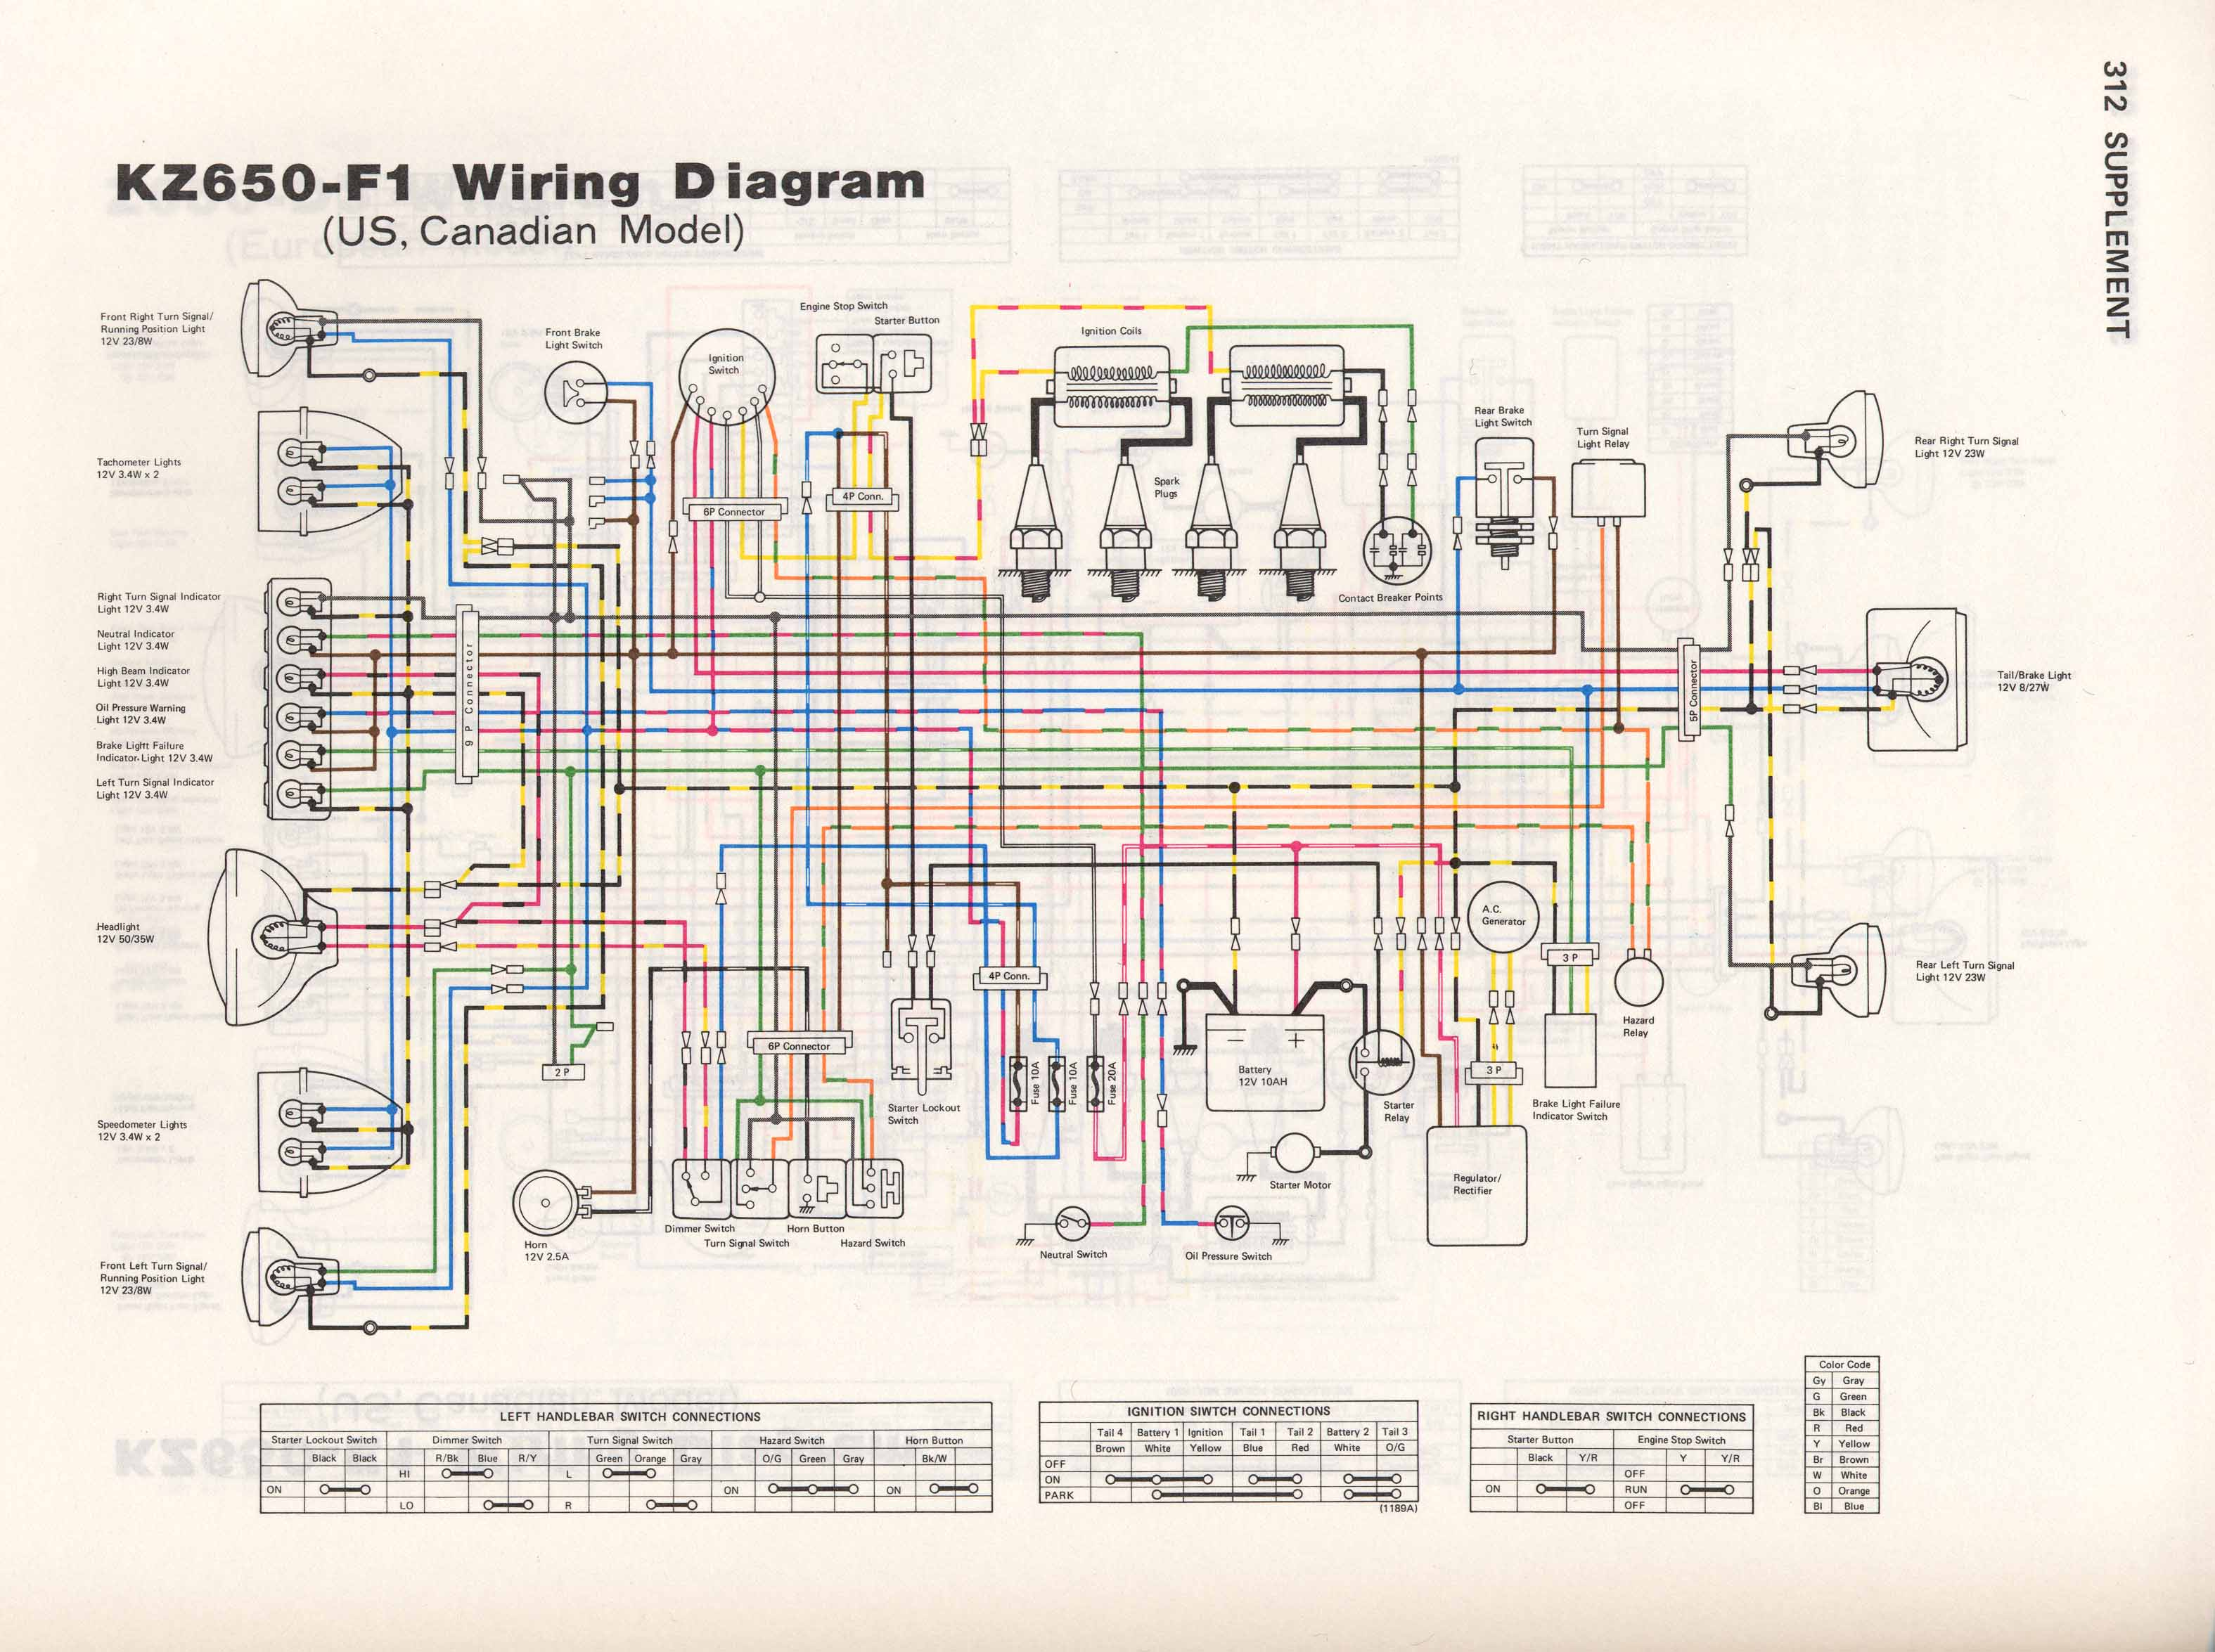 KZ650 F1 kz650 info wiring diagrams kawasaki wiring diagrams at gsmportal.co